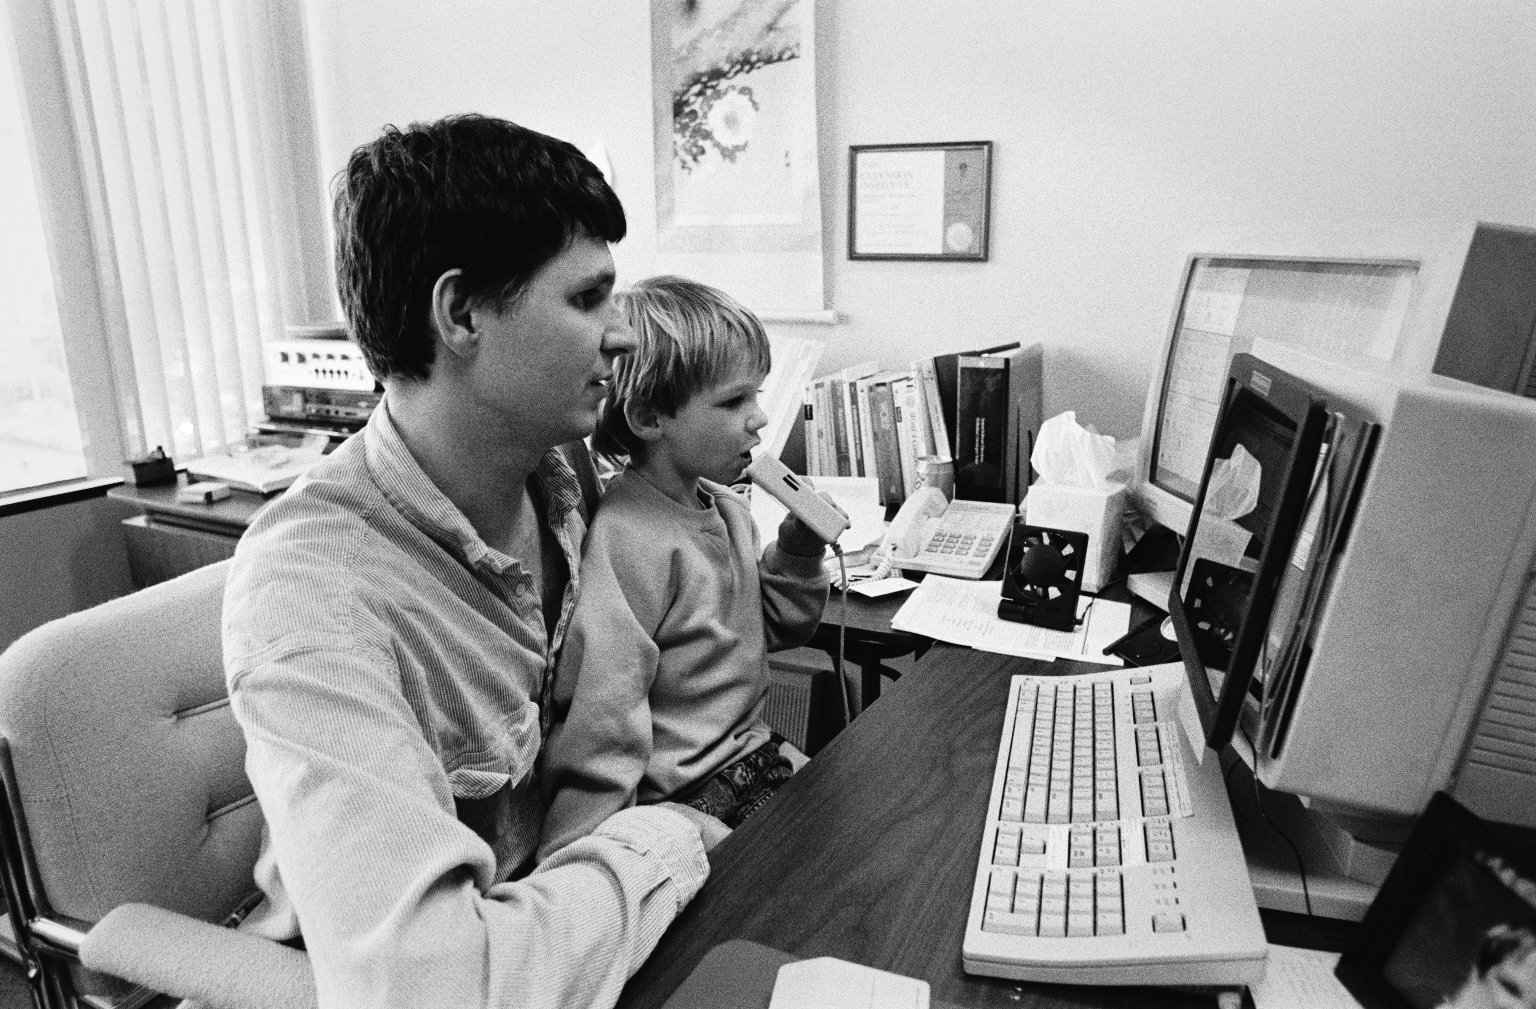 A Farallon engineer and his son at the office.